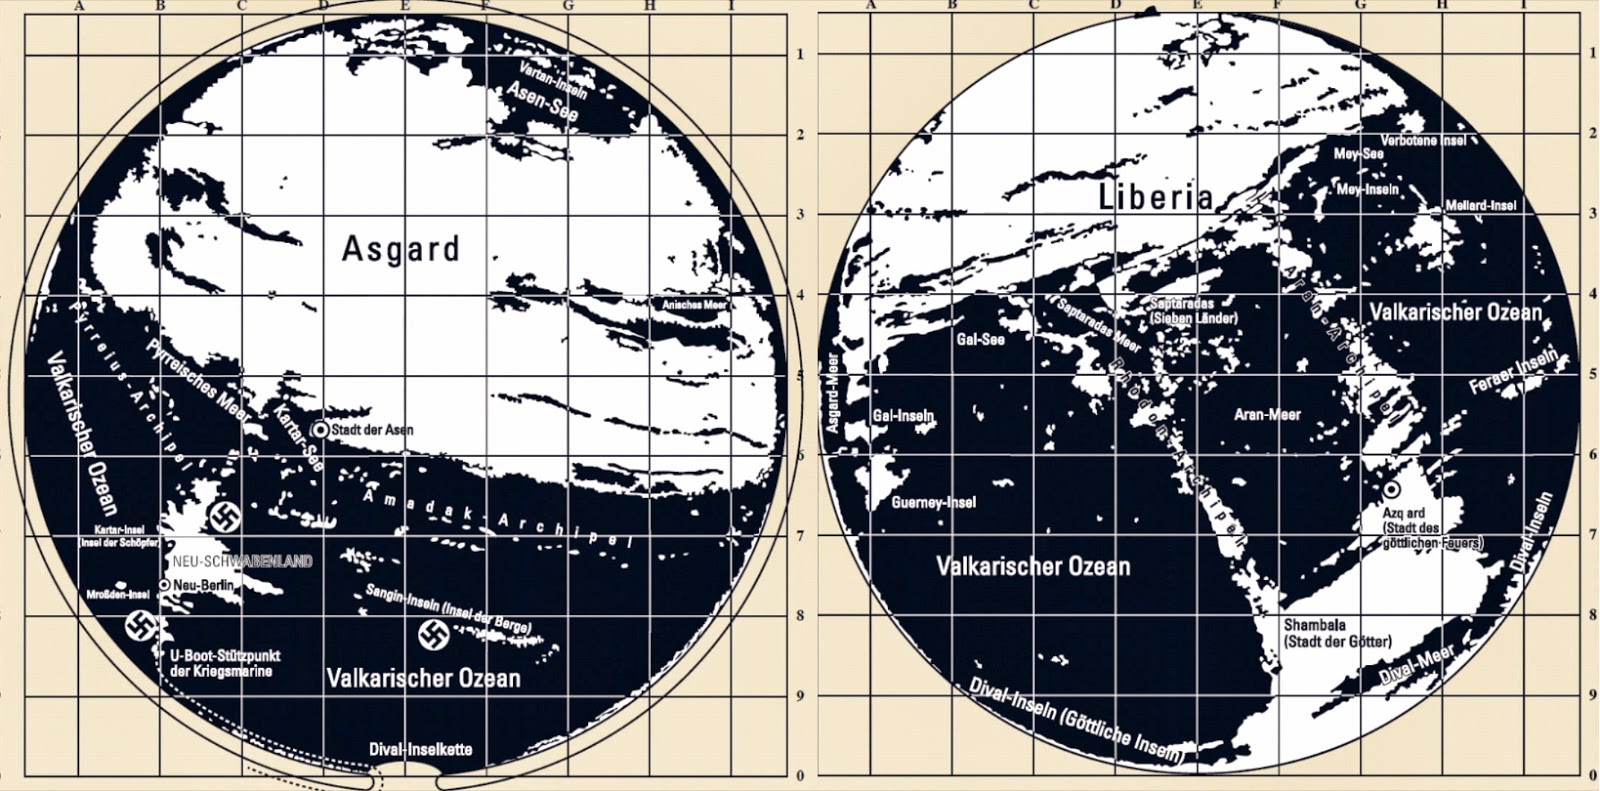 The Hollow Earth Maps Of Third Reich There Is An Entrance To Image A Diagram Showing Interior Please Have 713b8 Agartha